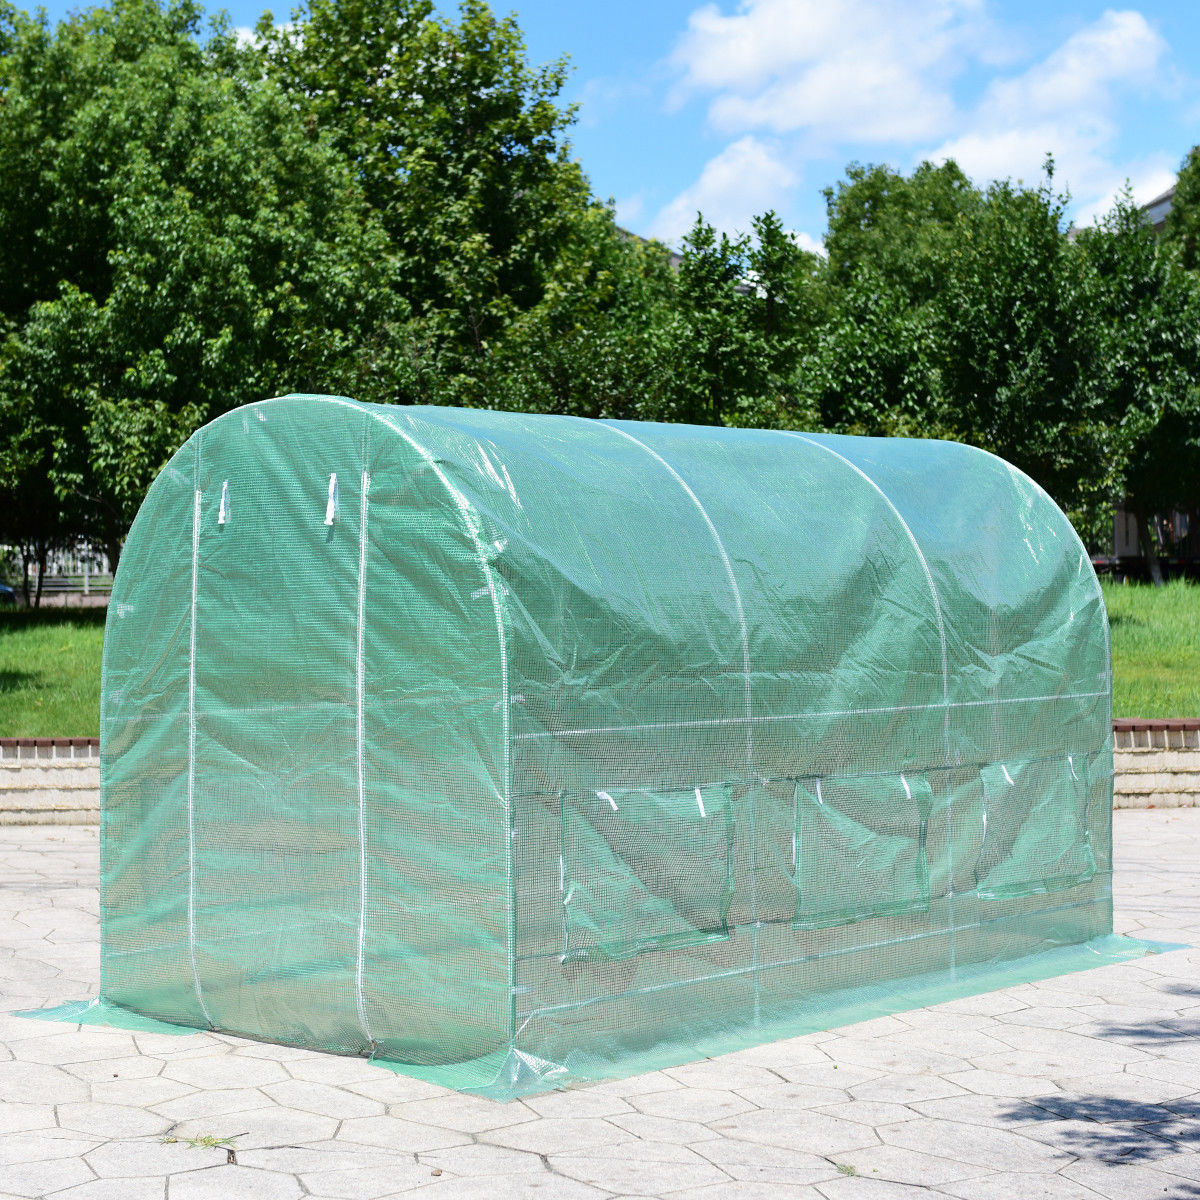 Costway 11.5'X 6.5'X6.5 Walk-in Greenhouse Steel Frame Backyard Grow Tents 6 Windows by Costway